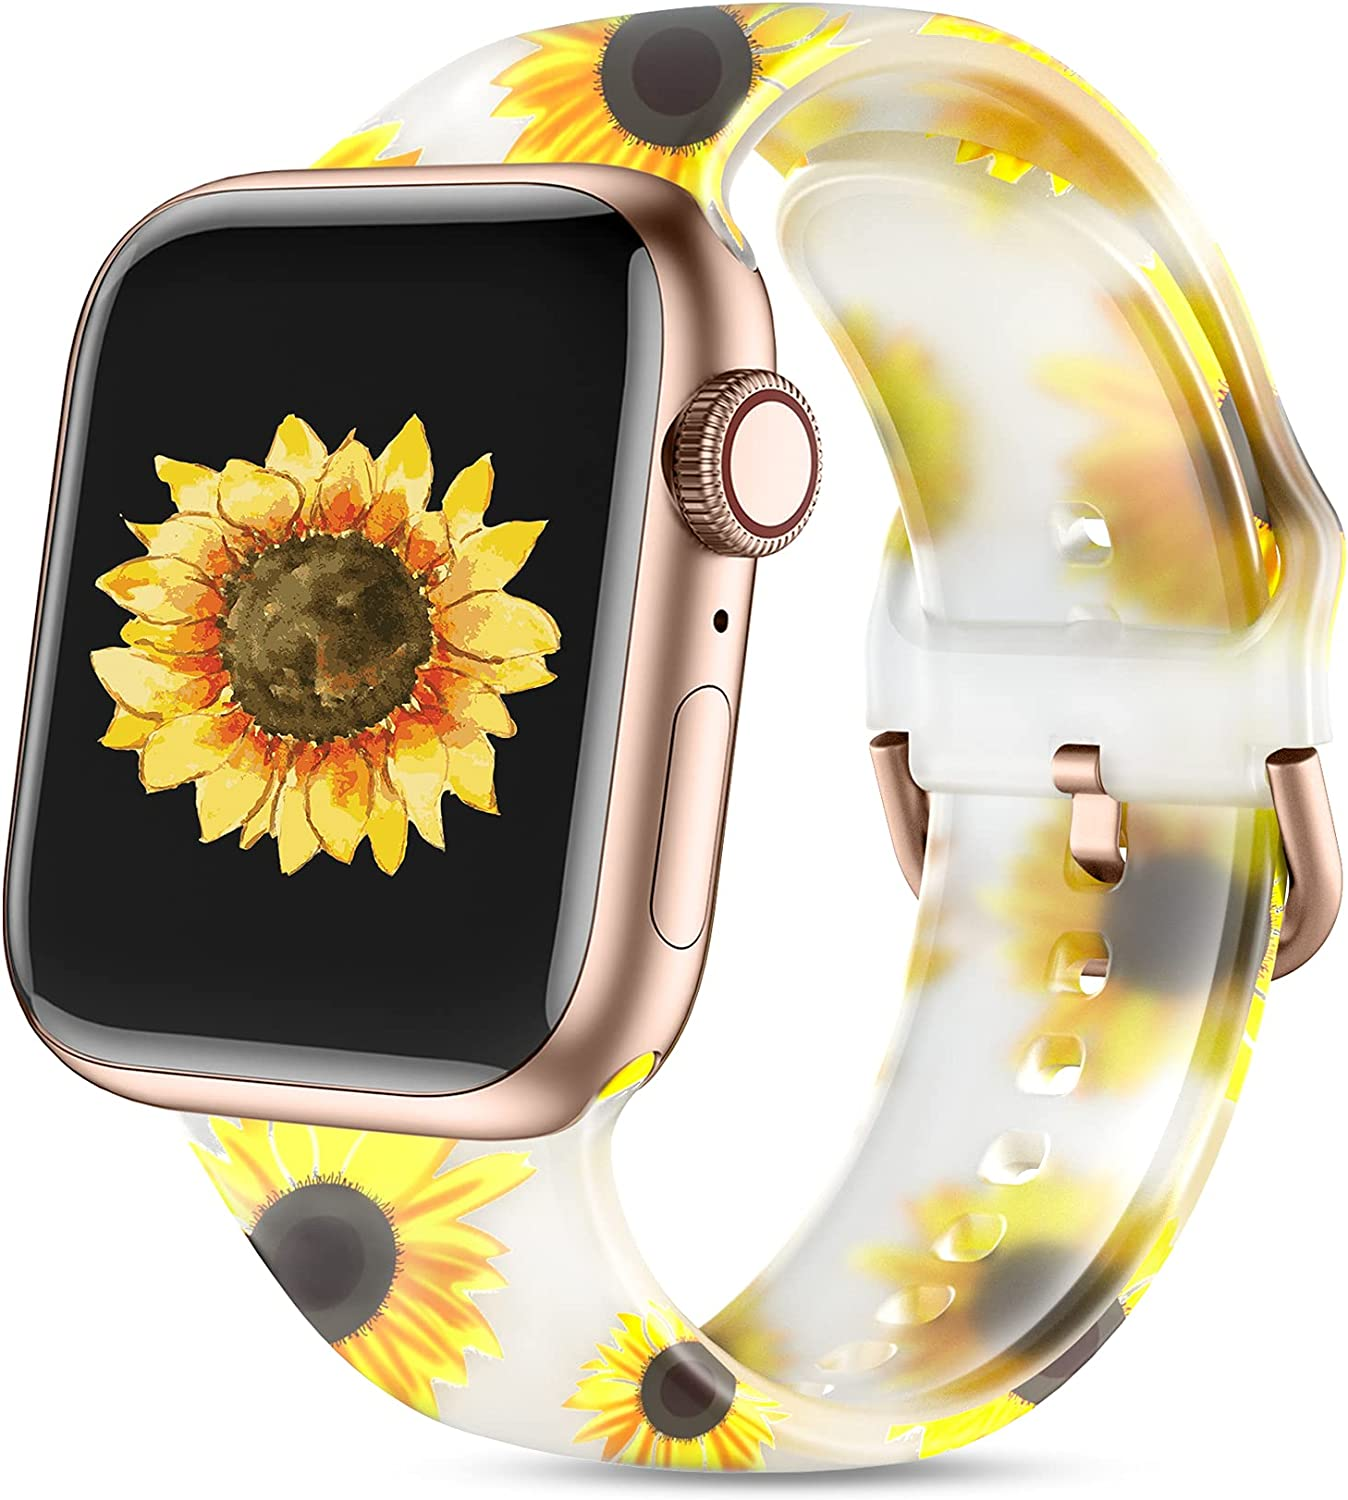 Witzon Cute Transparent Bands Compatible with Apple Watch Band 40mm 38mm iWatch Series 6/5/4/3/2/1/SE for Women Men Girls, Fadeless Floral Printed Silicone Sport Replacement Wristband